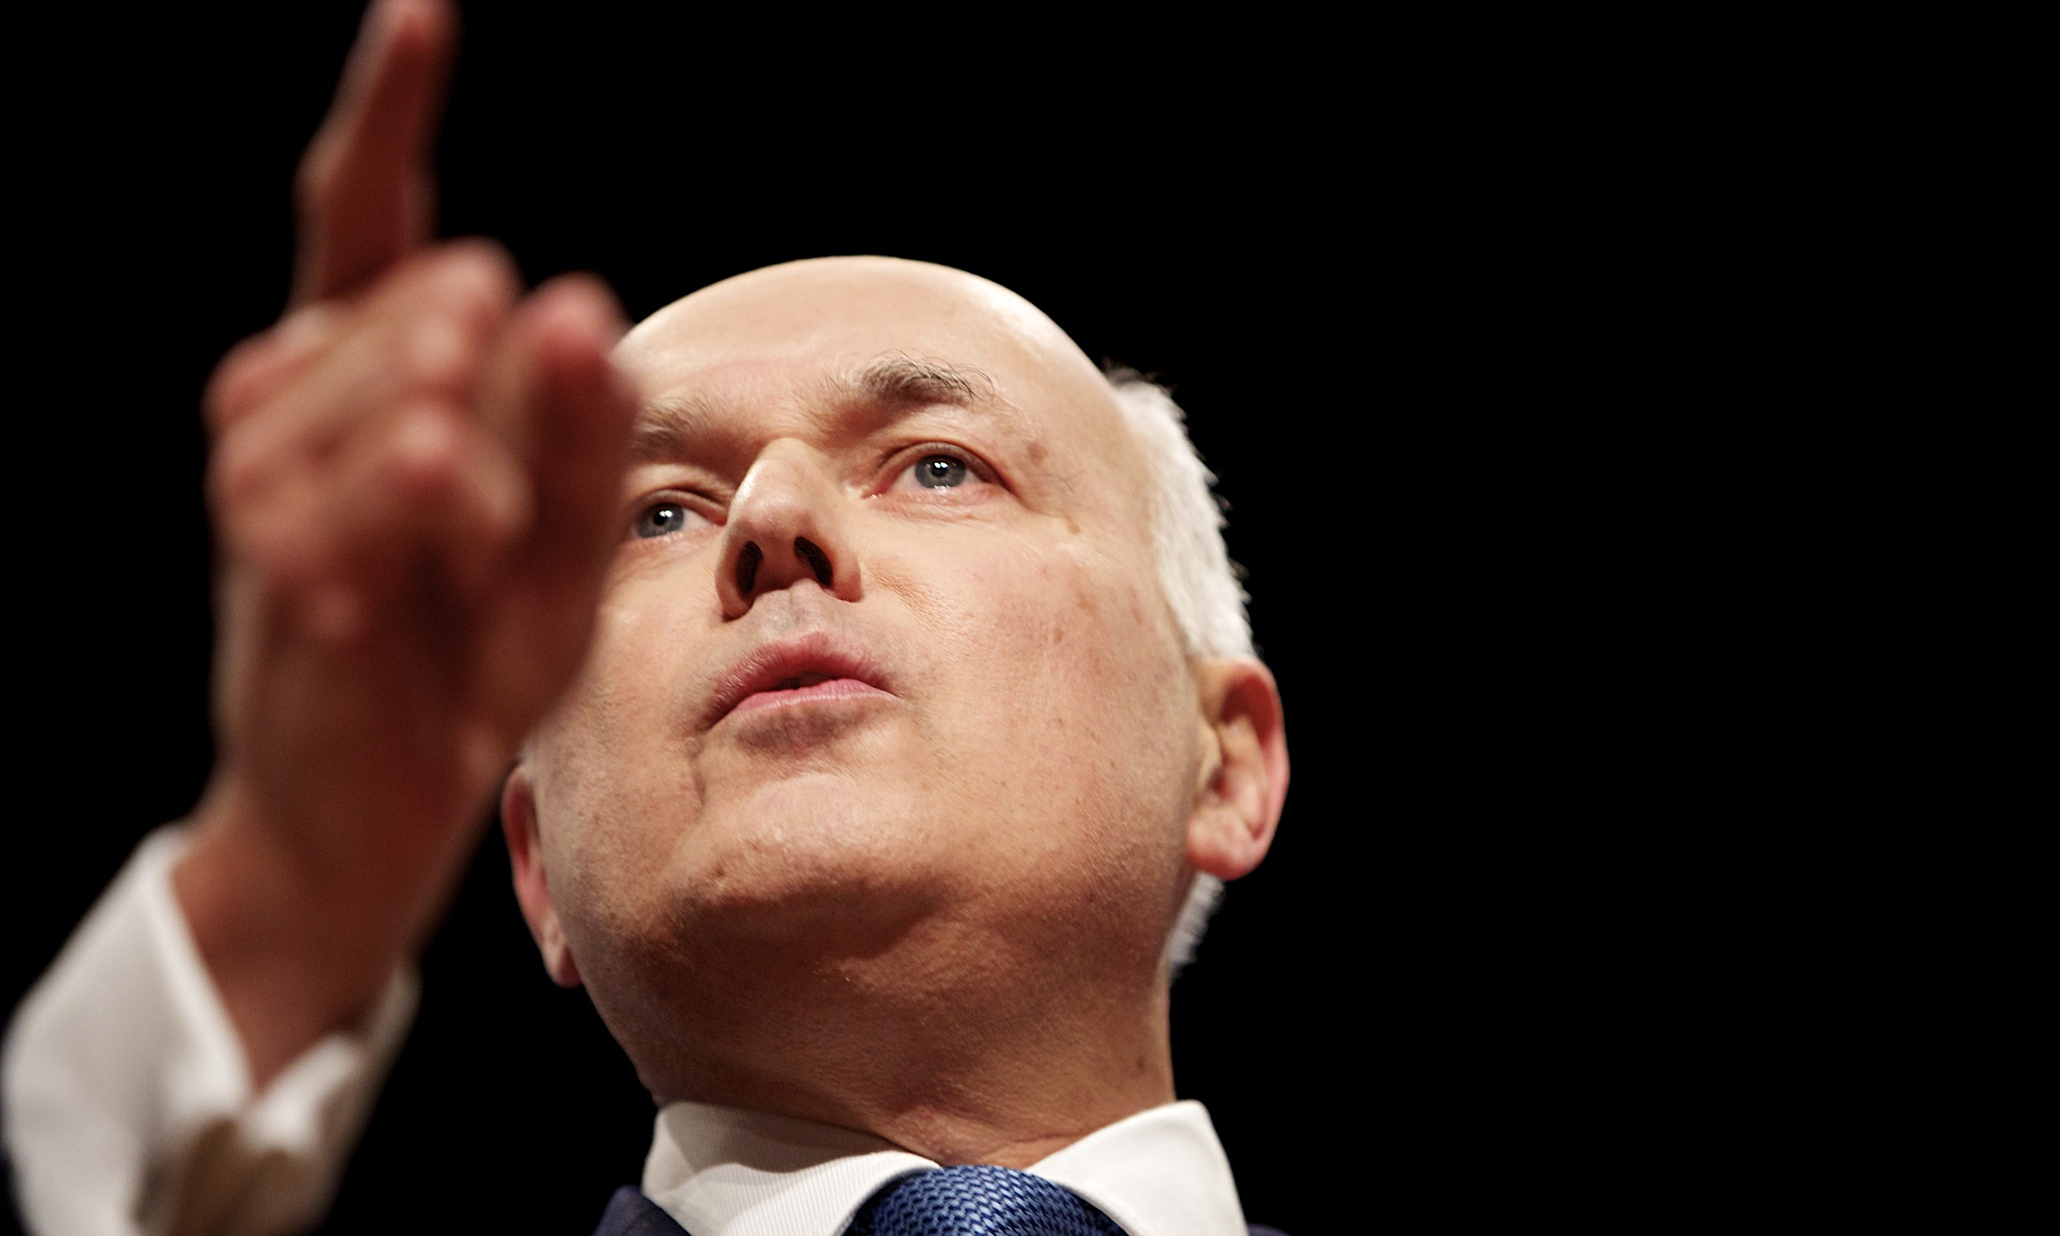 Does Iain Duncan Smith really think disabled people are less 'normal'? | Frances Ryan | Opinion | The Guardian - Iain-Duncan-Smith-009